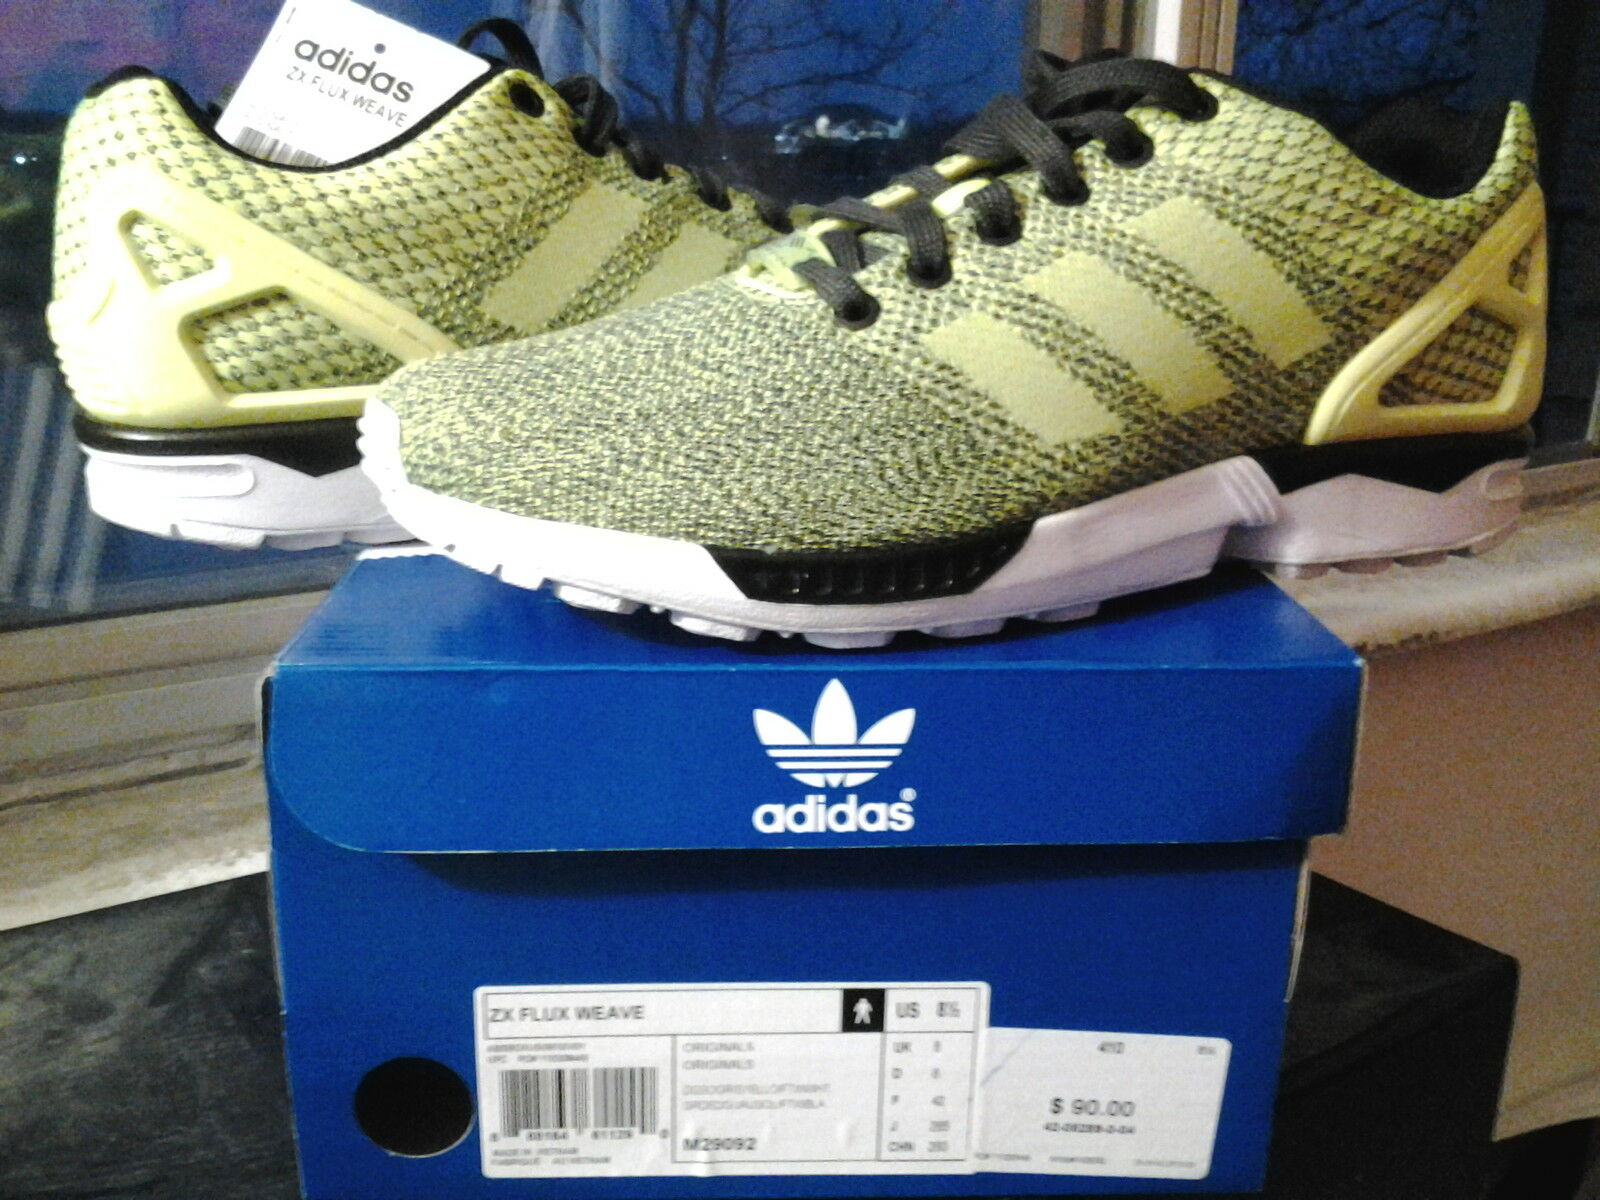 Adidas ZX Flux Weave Torsion Volt Yellow Neon Green Soft Grey Black White M29092